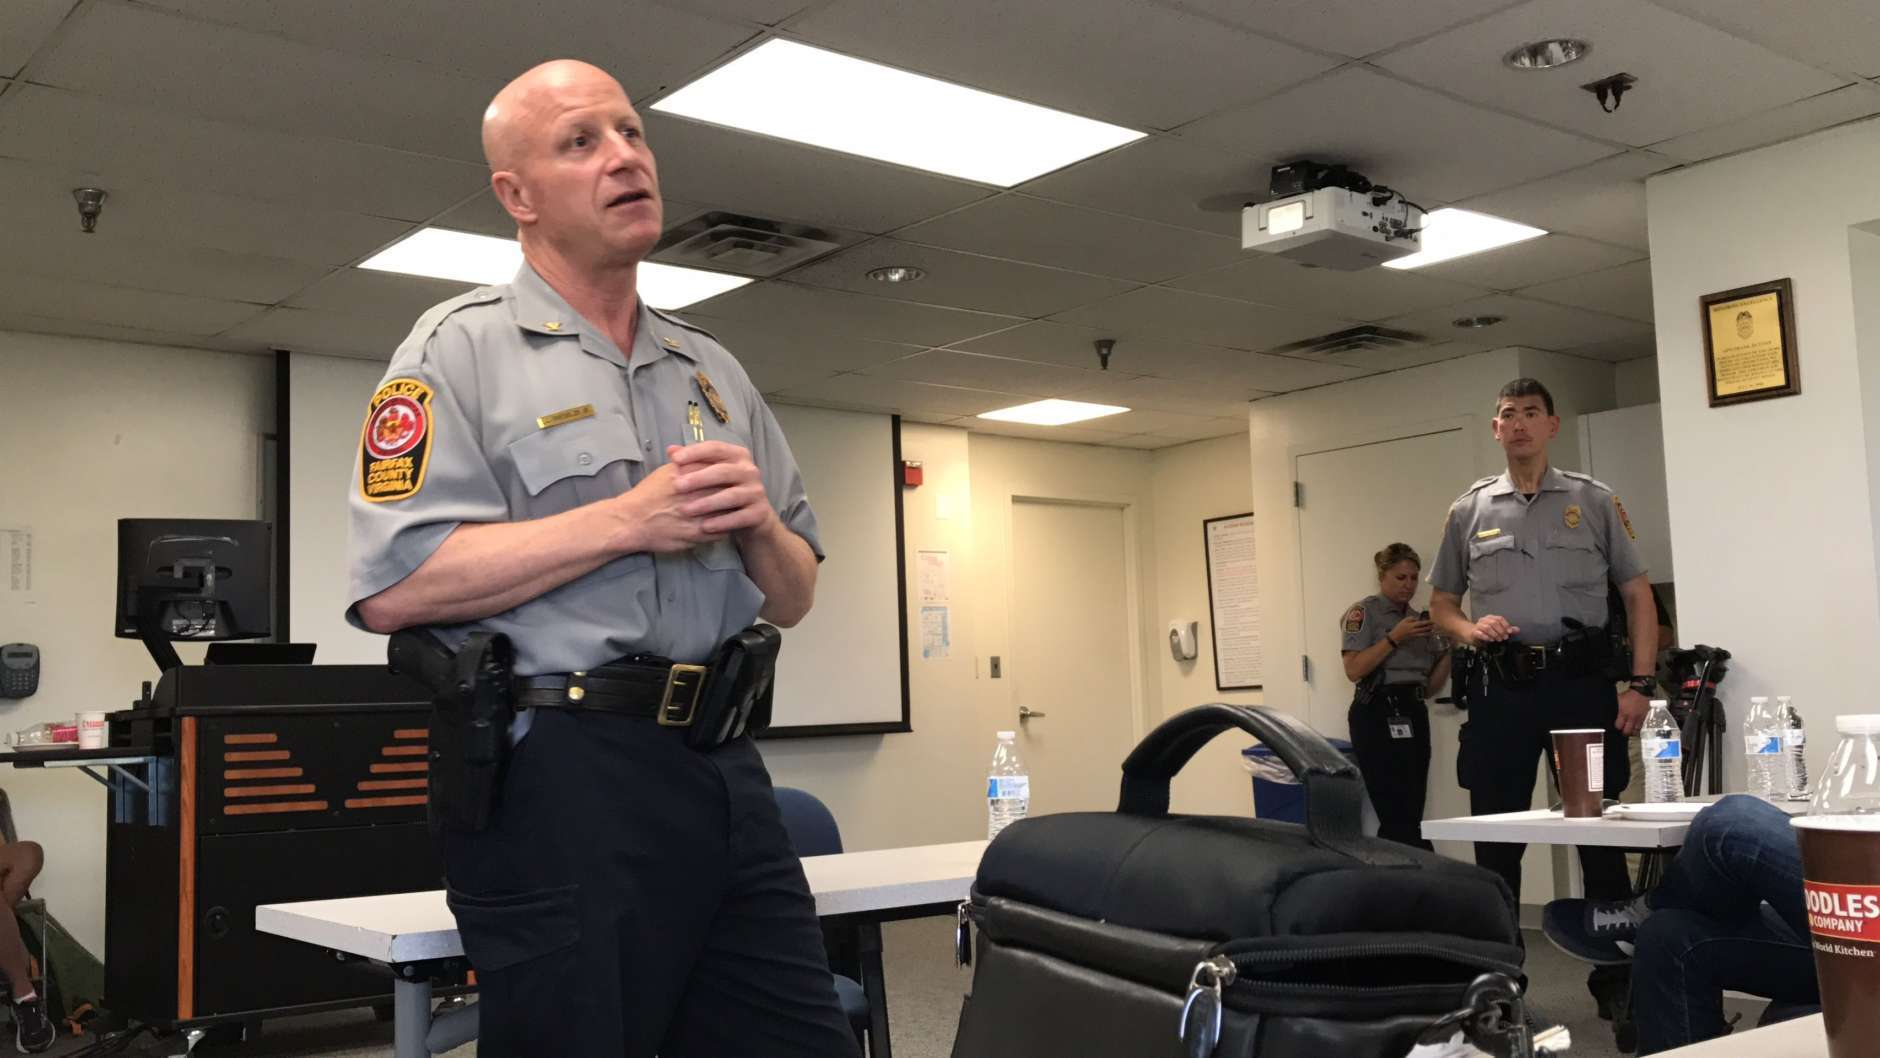 Fairfax County Police Chief Ed Roessler talks to members of the media who are trying to learn about the every day dangers law enforcement officers face. (WTOP/Ginger Whitaker)